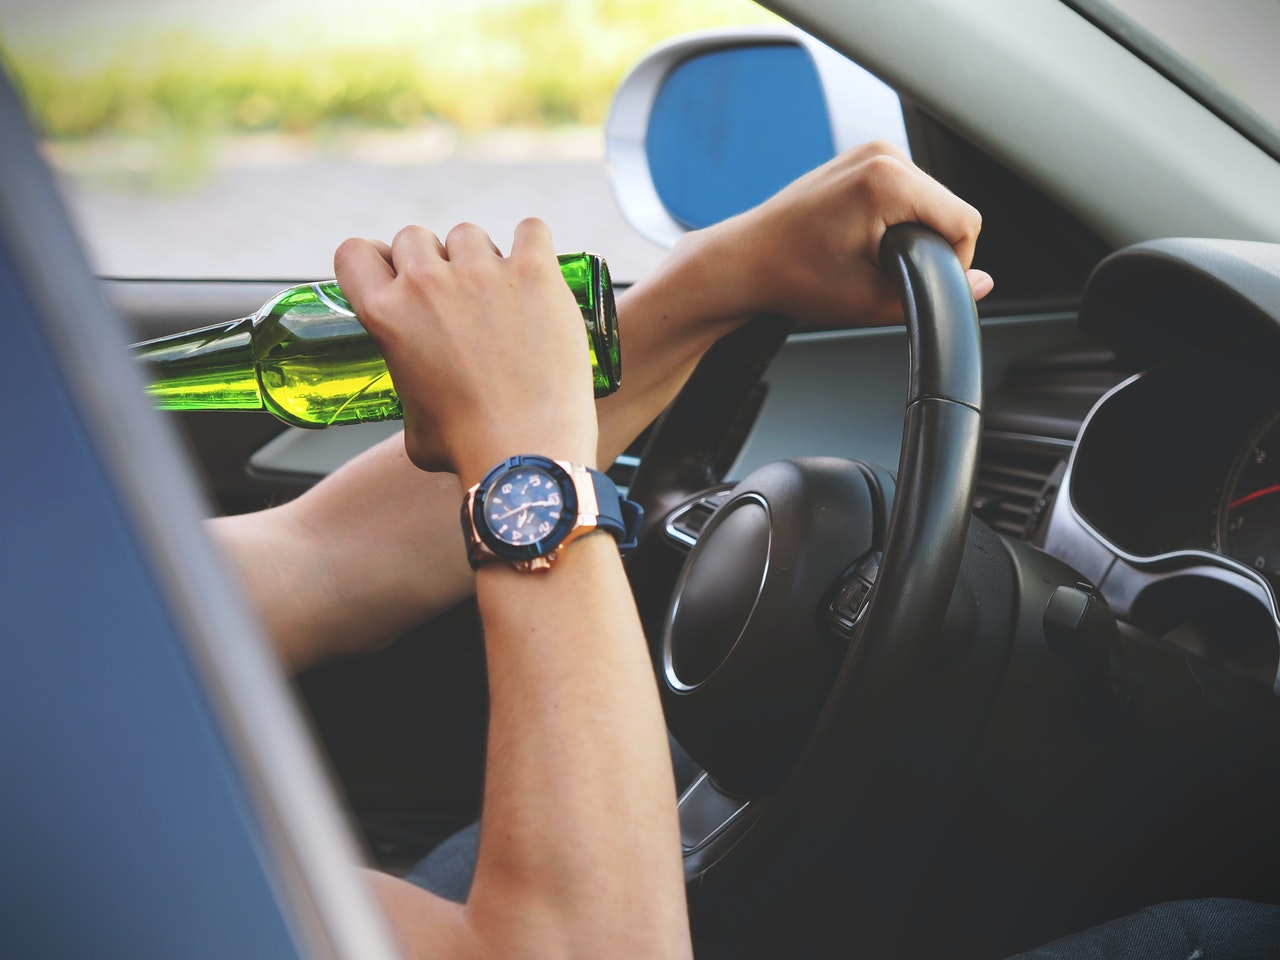 What Is An Aggravated DUI?